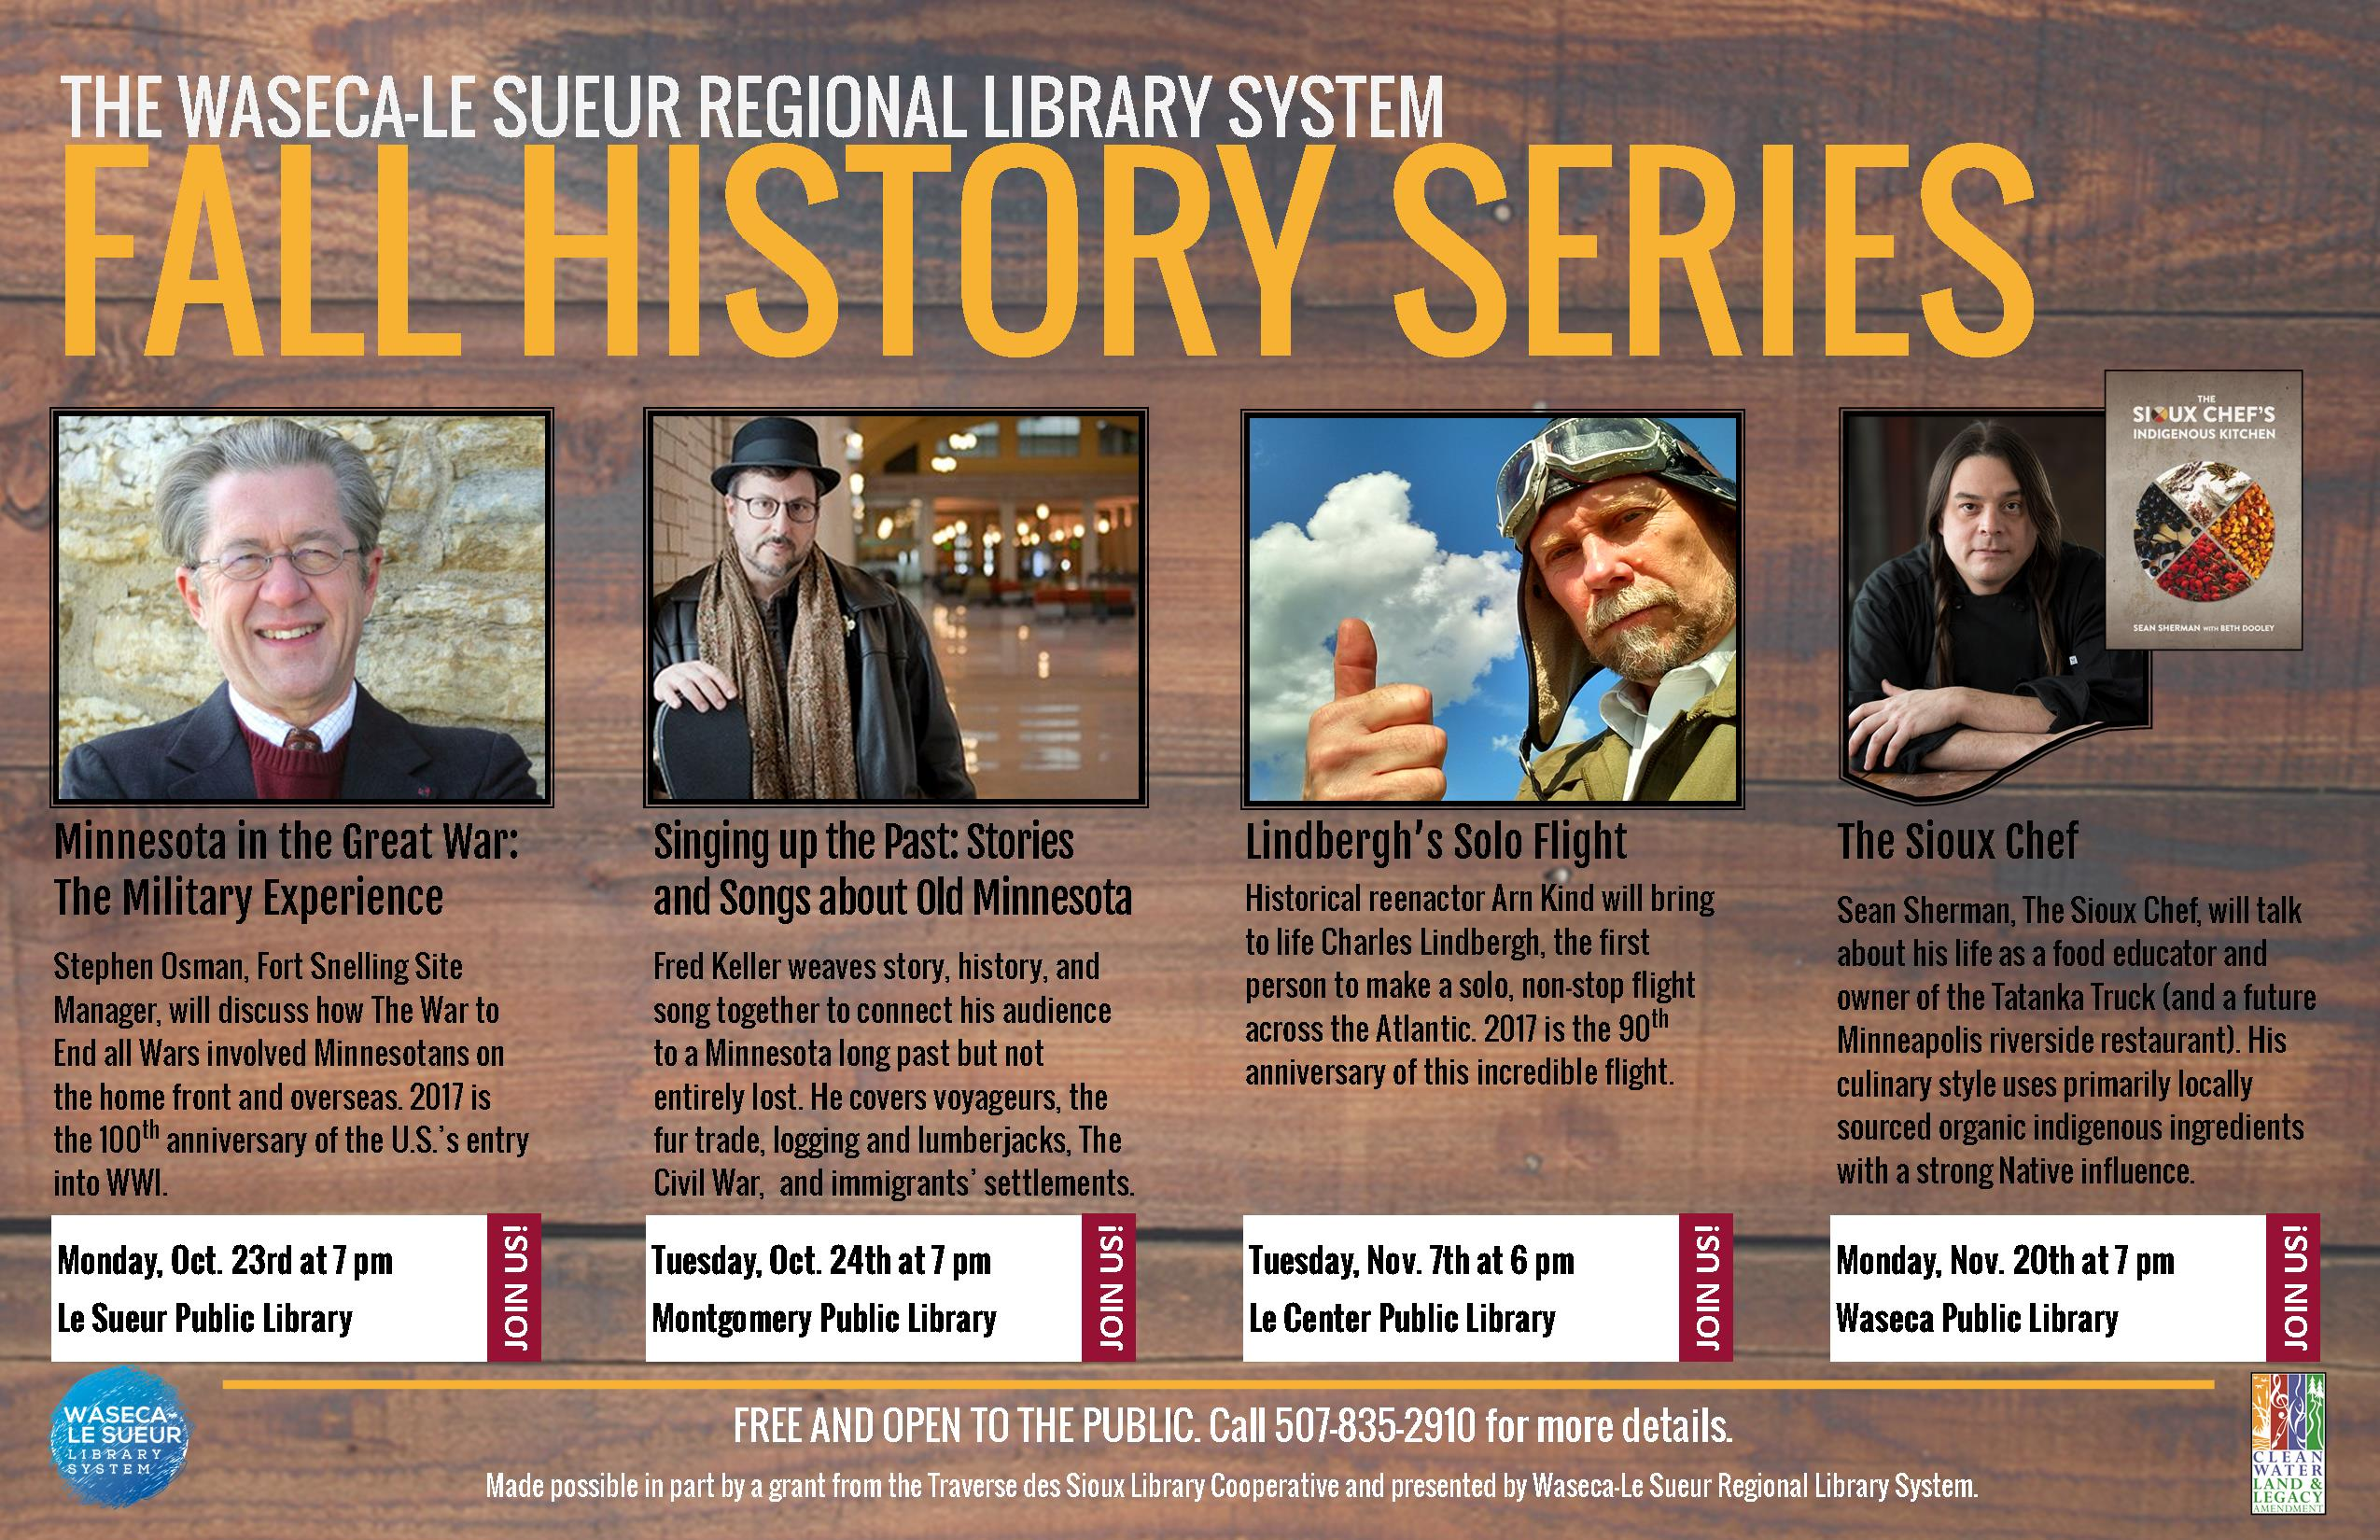 Waseca-Le Sueur Regional Library System Announces Fall History Series